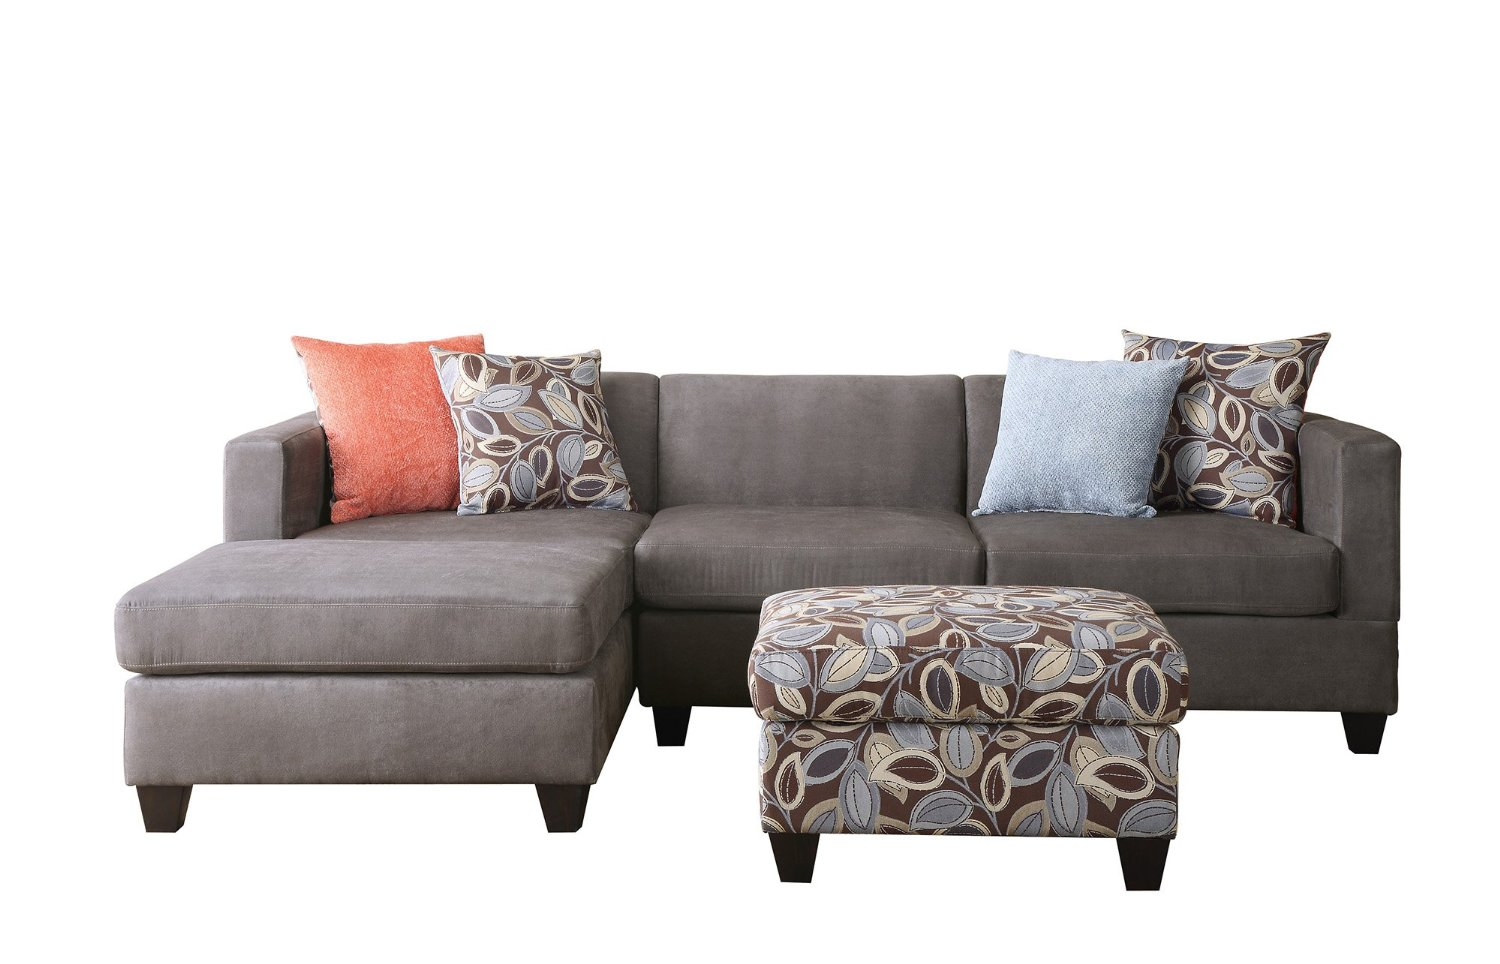 How Many Throw Pillows On A Sectional Couch : Types of Best Small Sectional Couches for Small Living Rooms HomesFeed